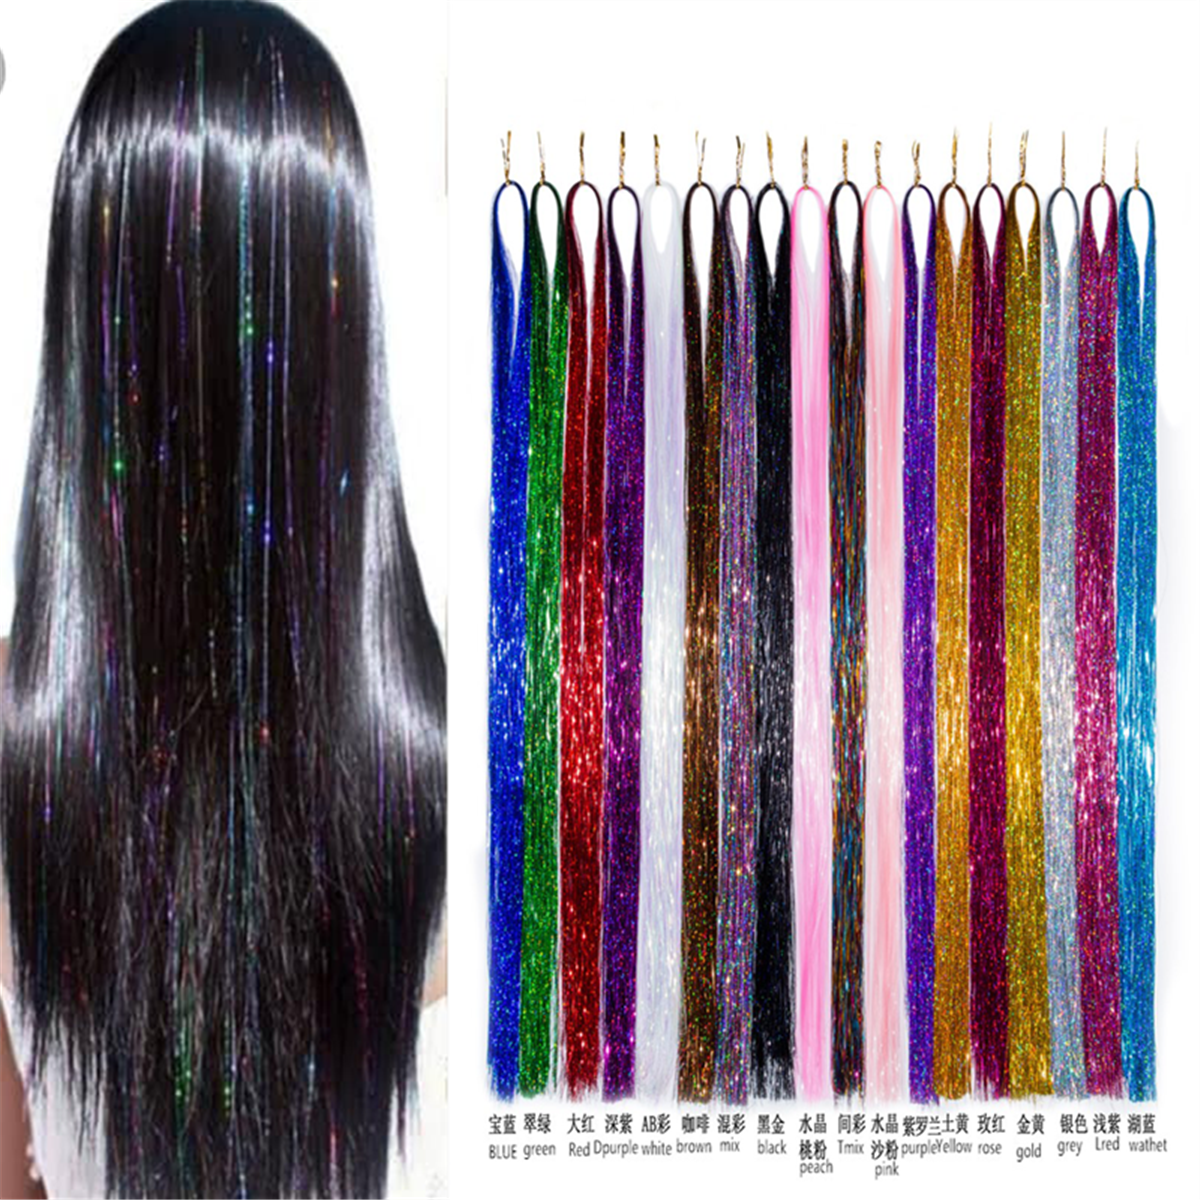 Tinsel Bling Hair Decoration Shiny Hair Synthetic Hair Extension Glitter Rainbow For Girls And Party 120cm 300 Strands/piece